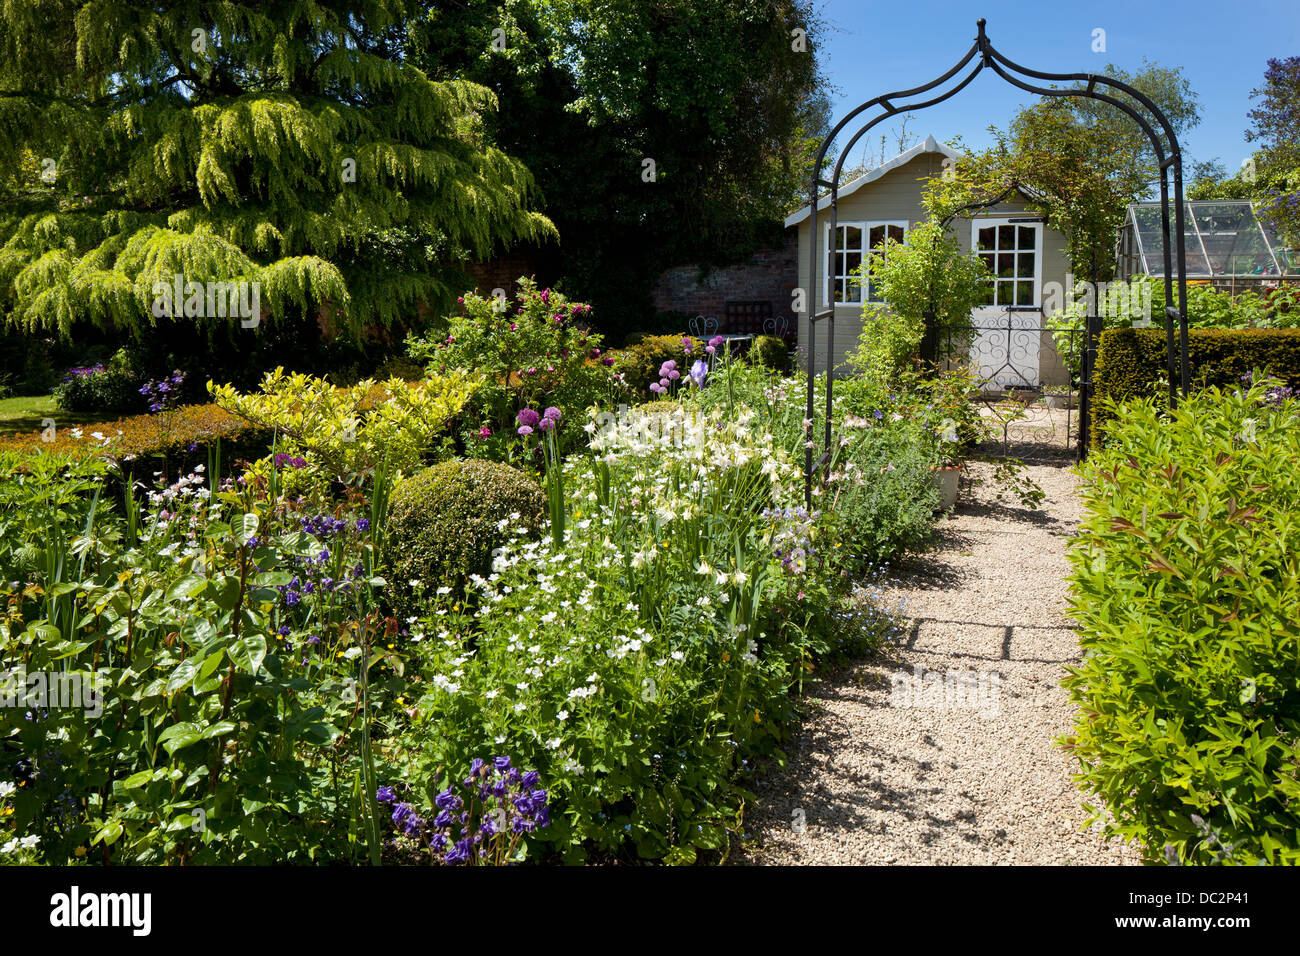 Metal arch leading on a gravel path to flower boarder and summerhouse on English garden, England - Stock Image